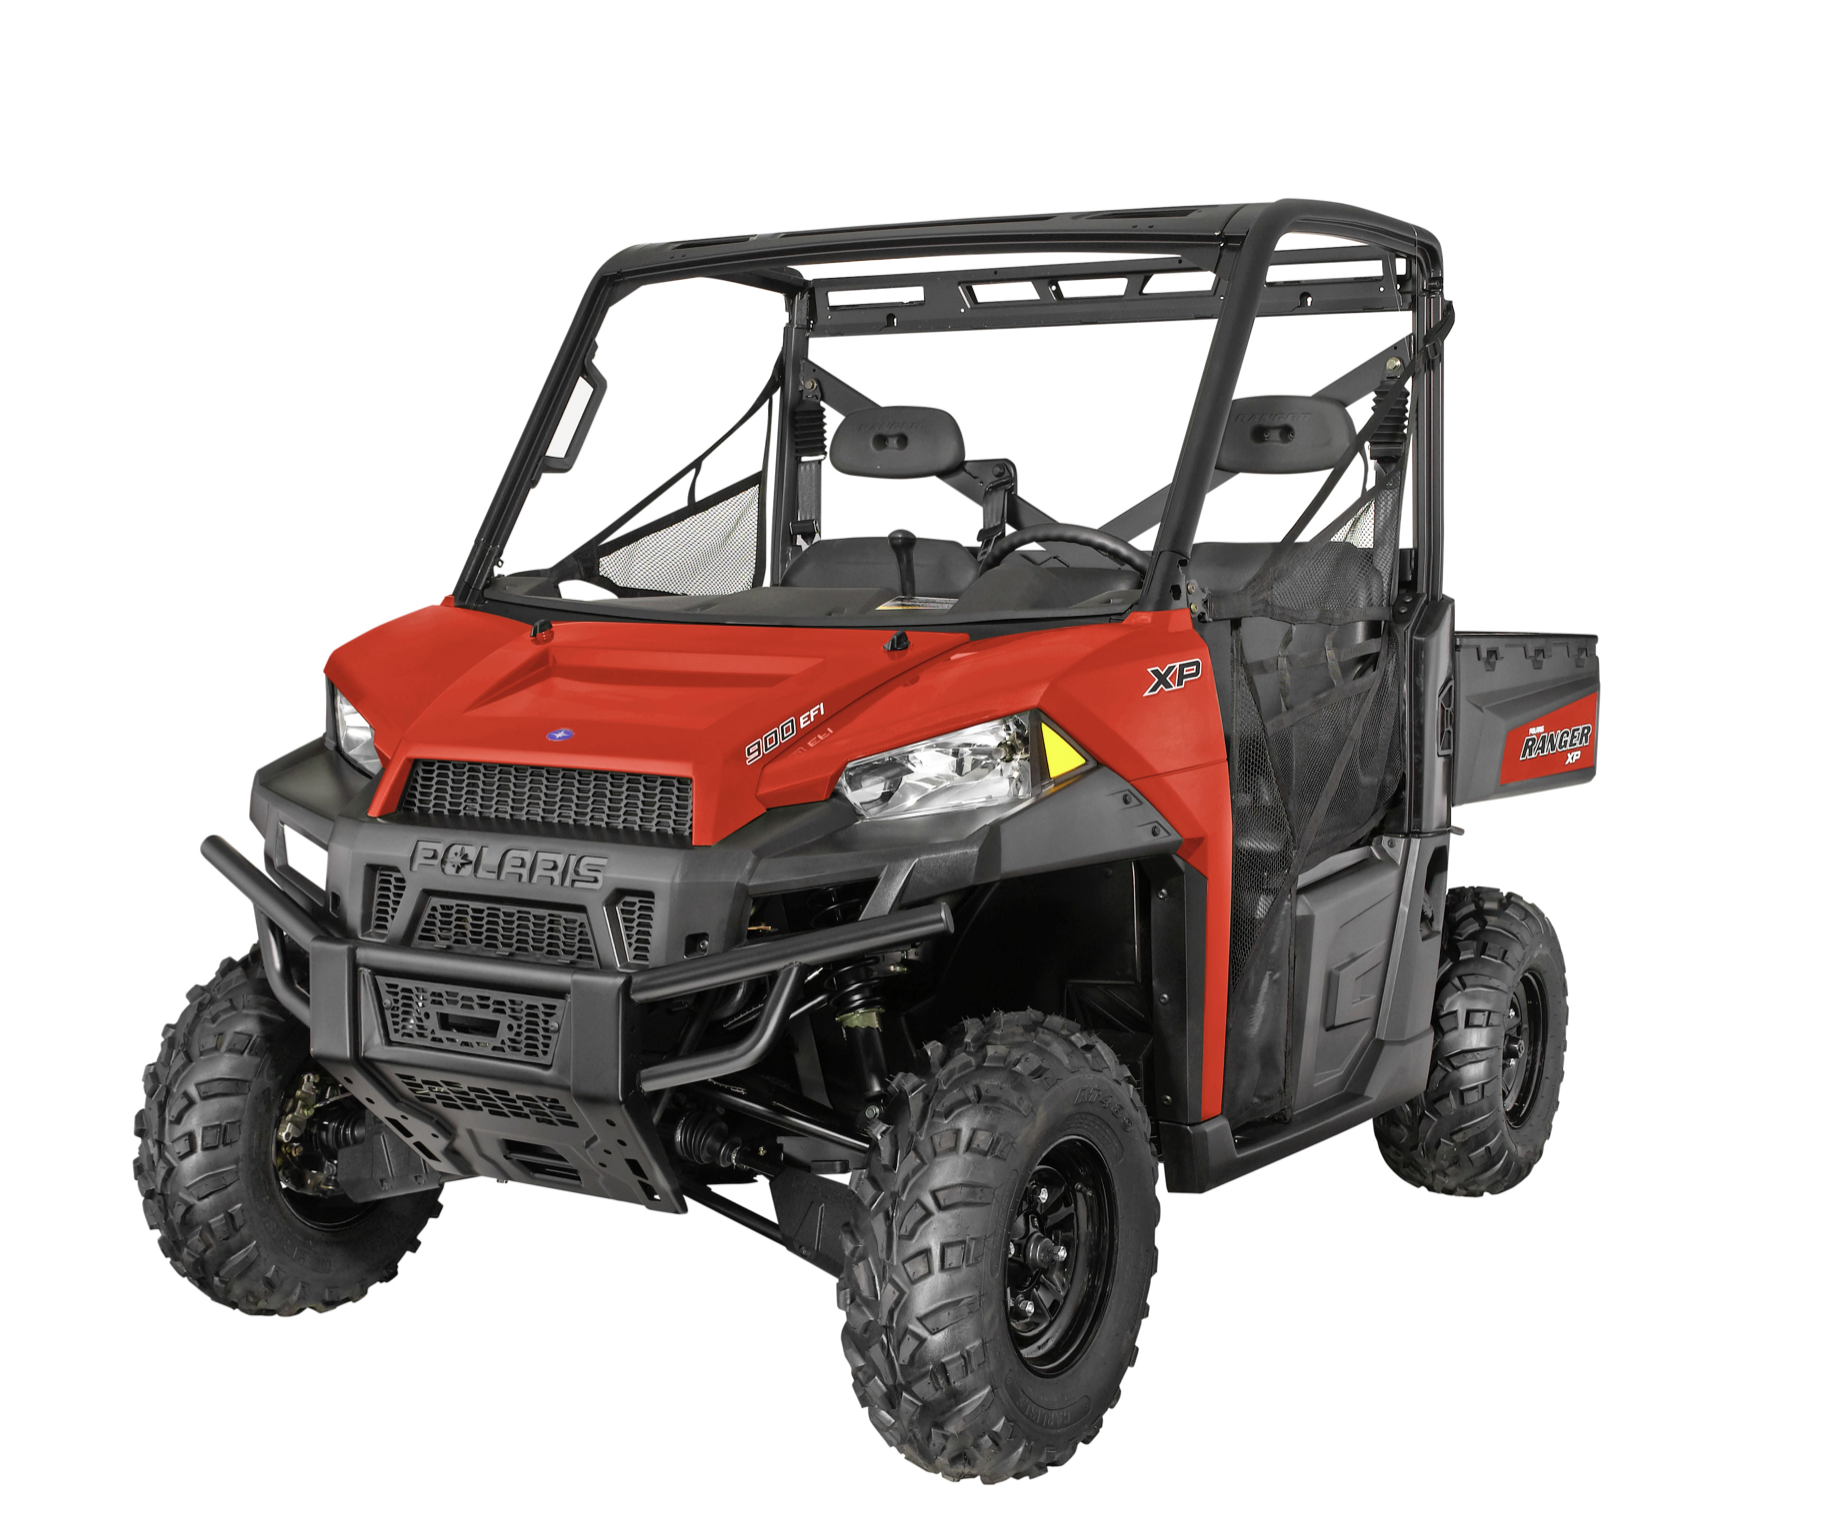 Polaris Agrees to Pay $27.25 Million Civil Penalty for Failure to Report Defective Recreational Off-Road Vehicles